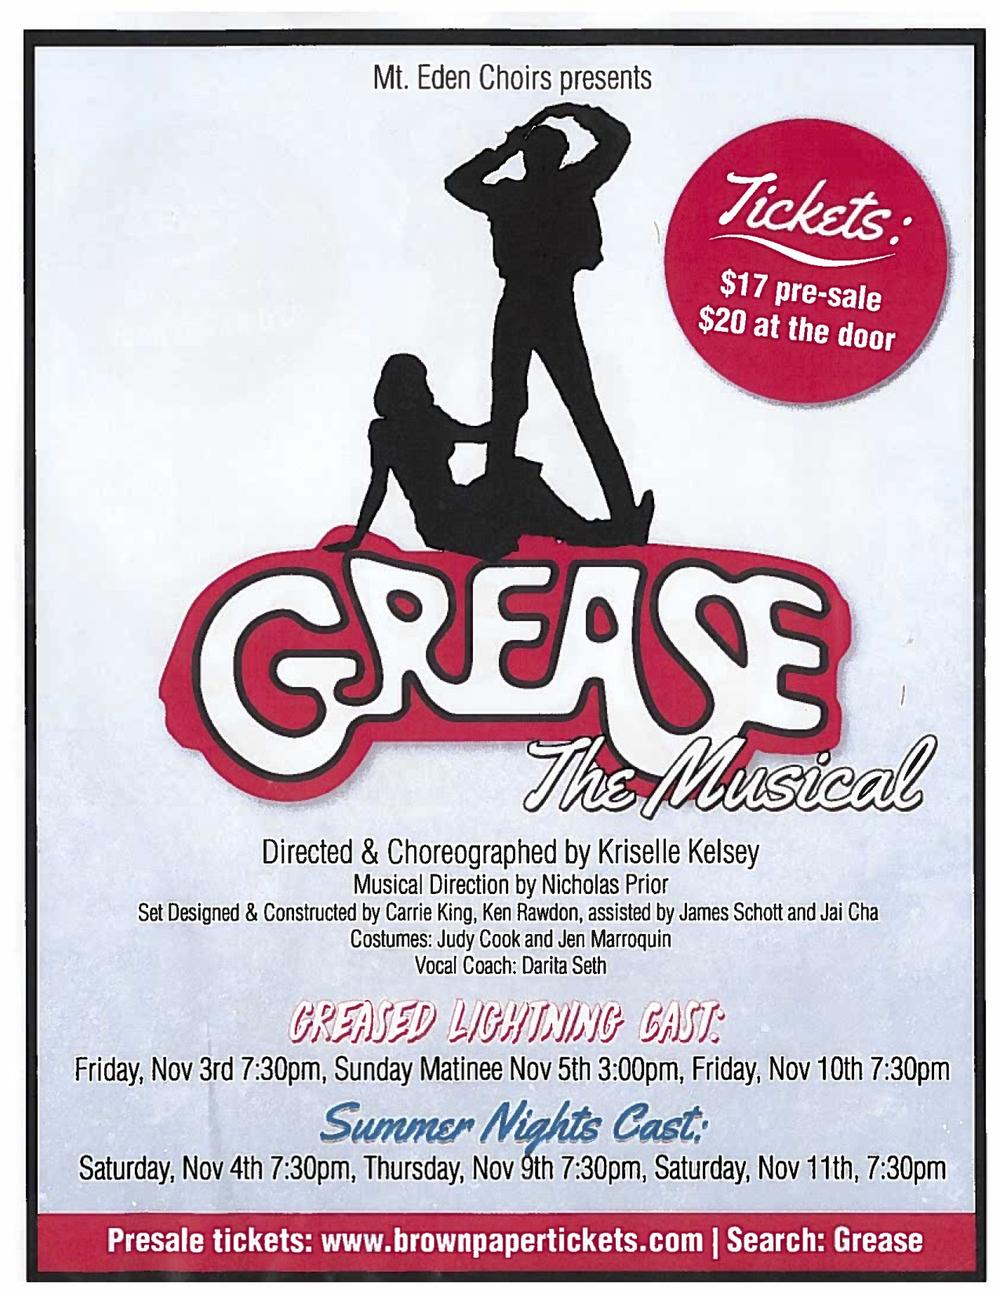 MLKing - Grease the Musical